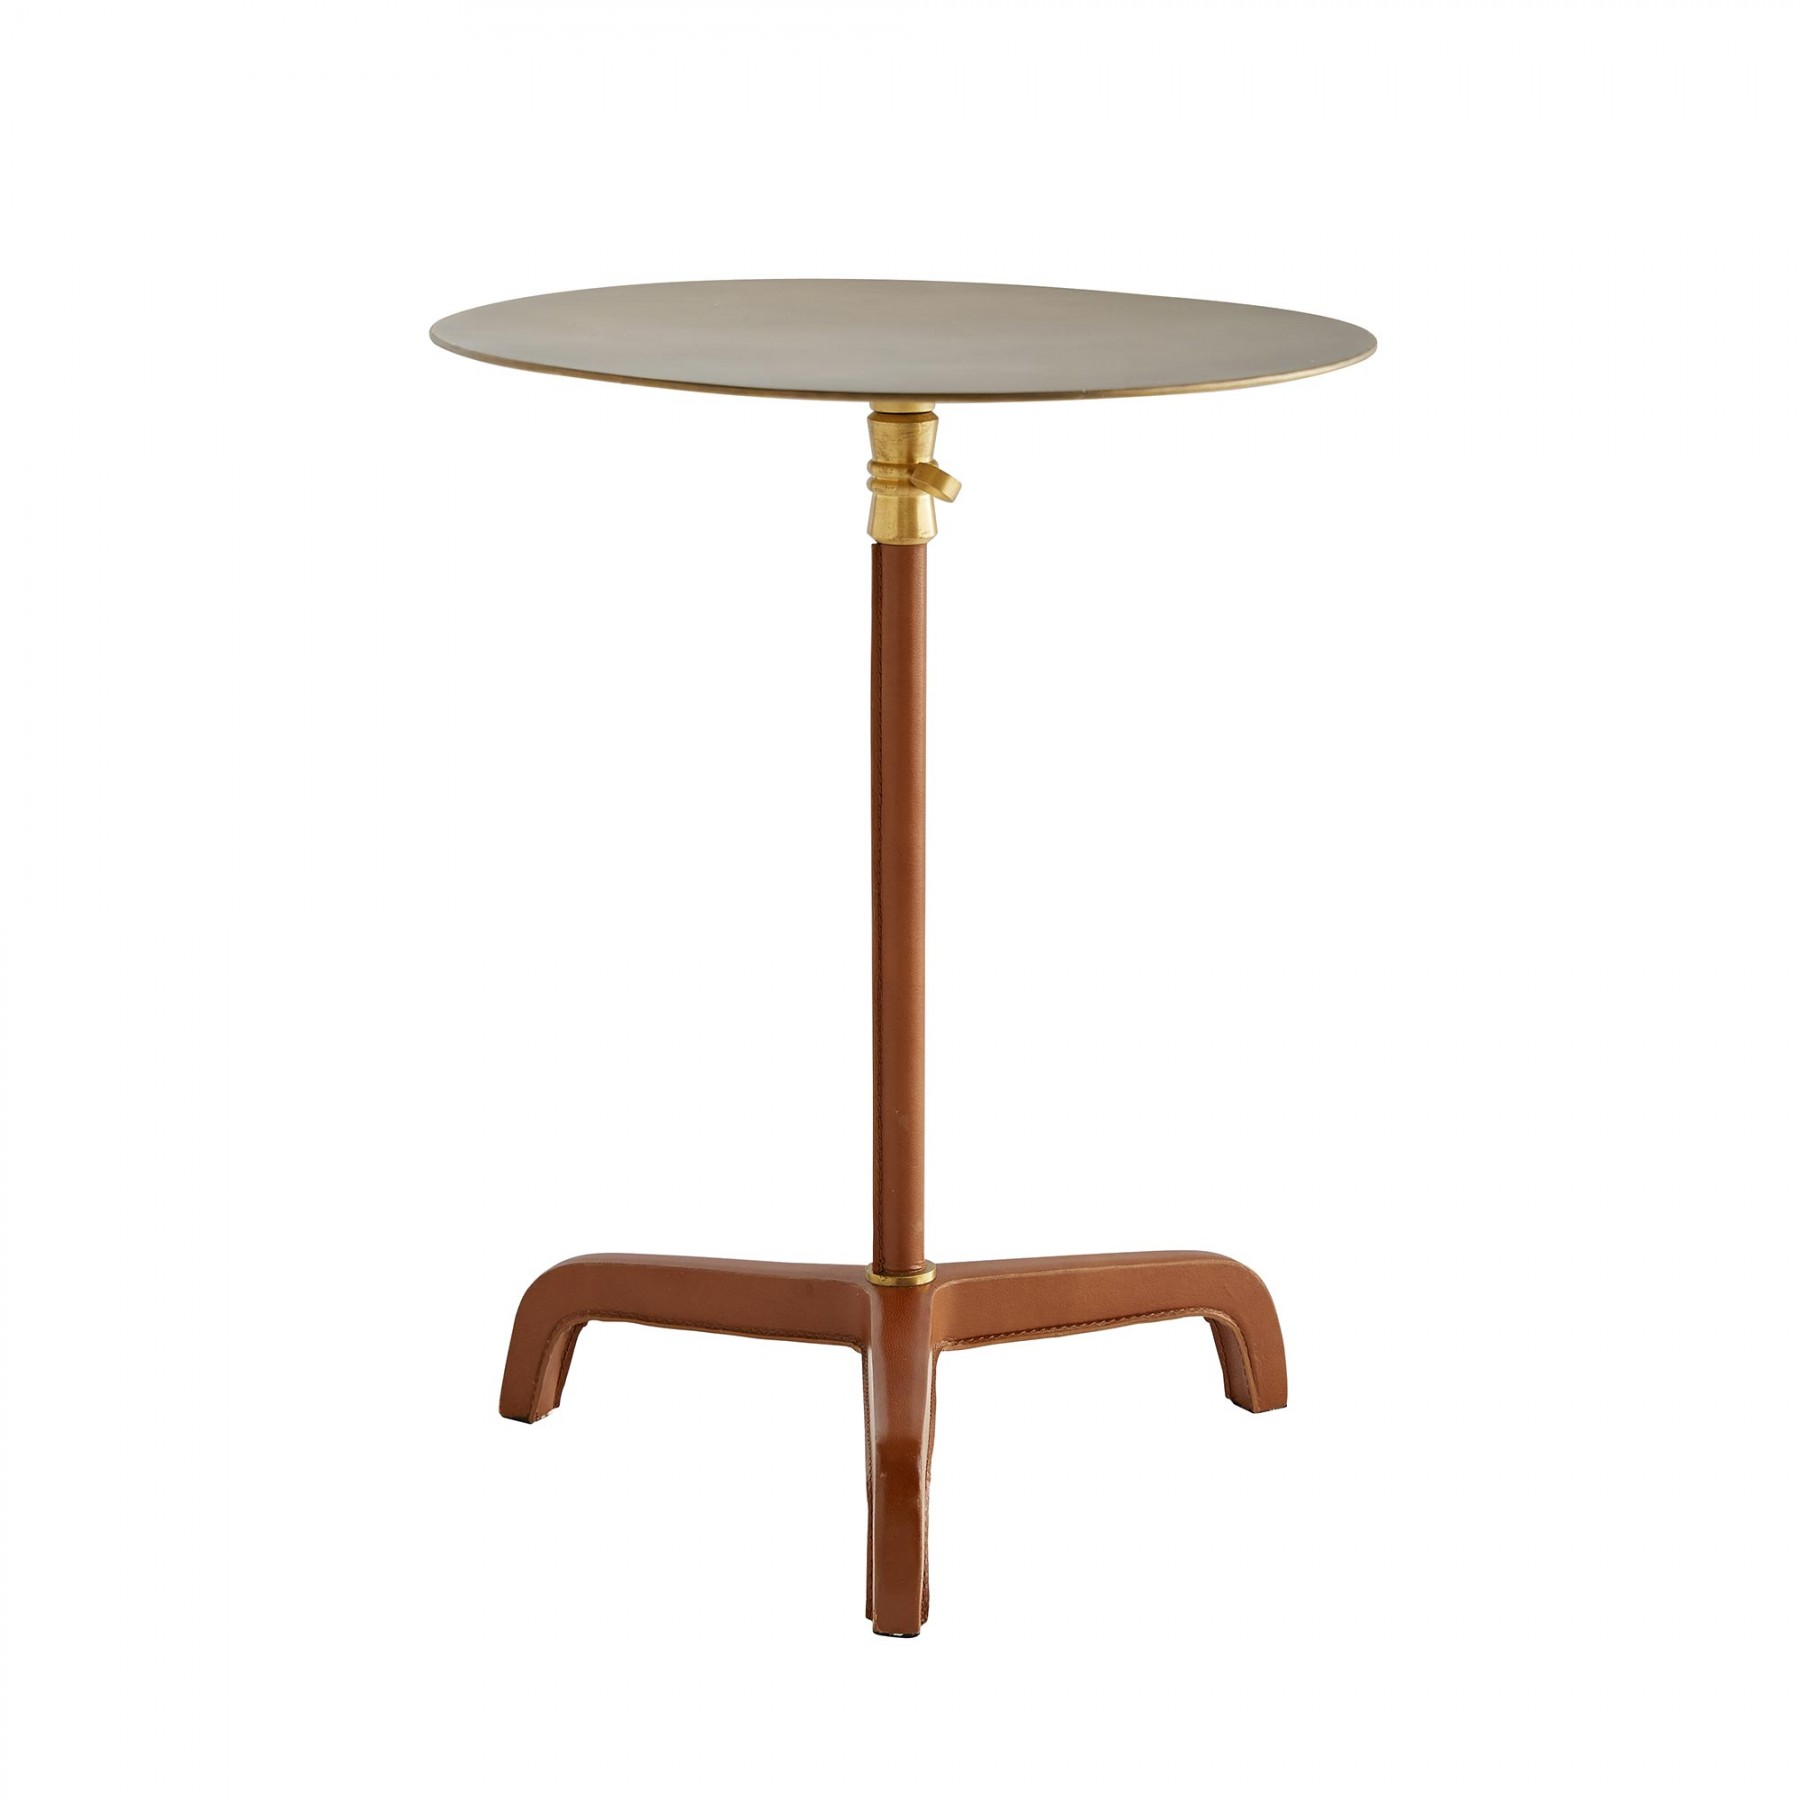 addison tall accent table gold aluminium door threshold butterfly tiffany lamp set nesting tables narrow console cabinet campaign side pier imports outdoor cushions retro dining